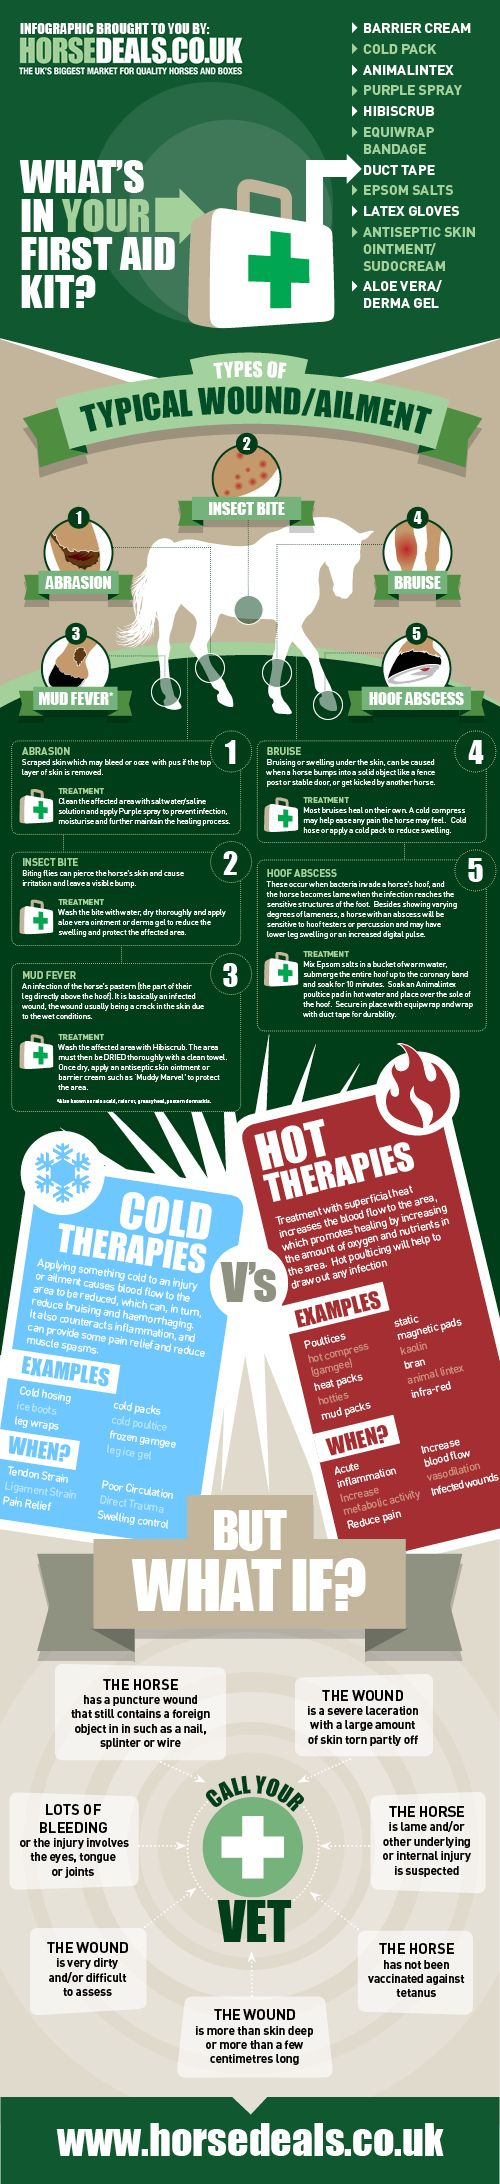 First aid infographic for common ailments and wounds. www.horsedeals.co.uk